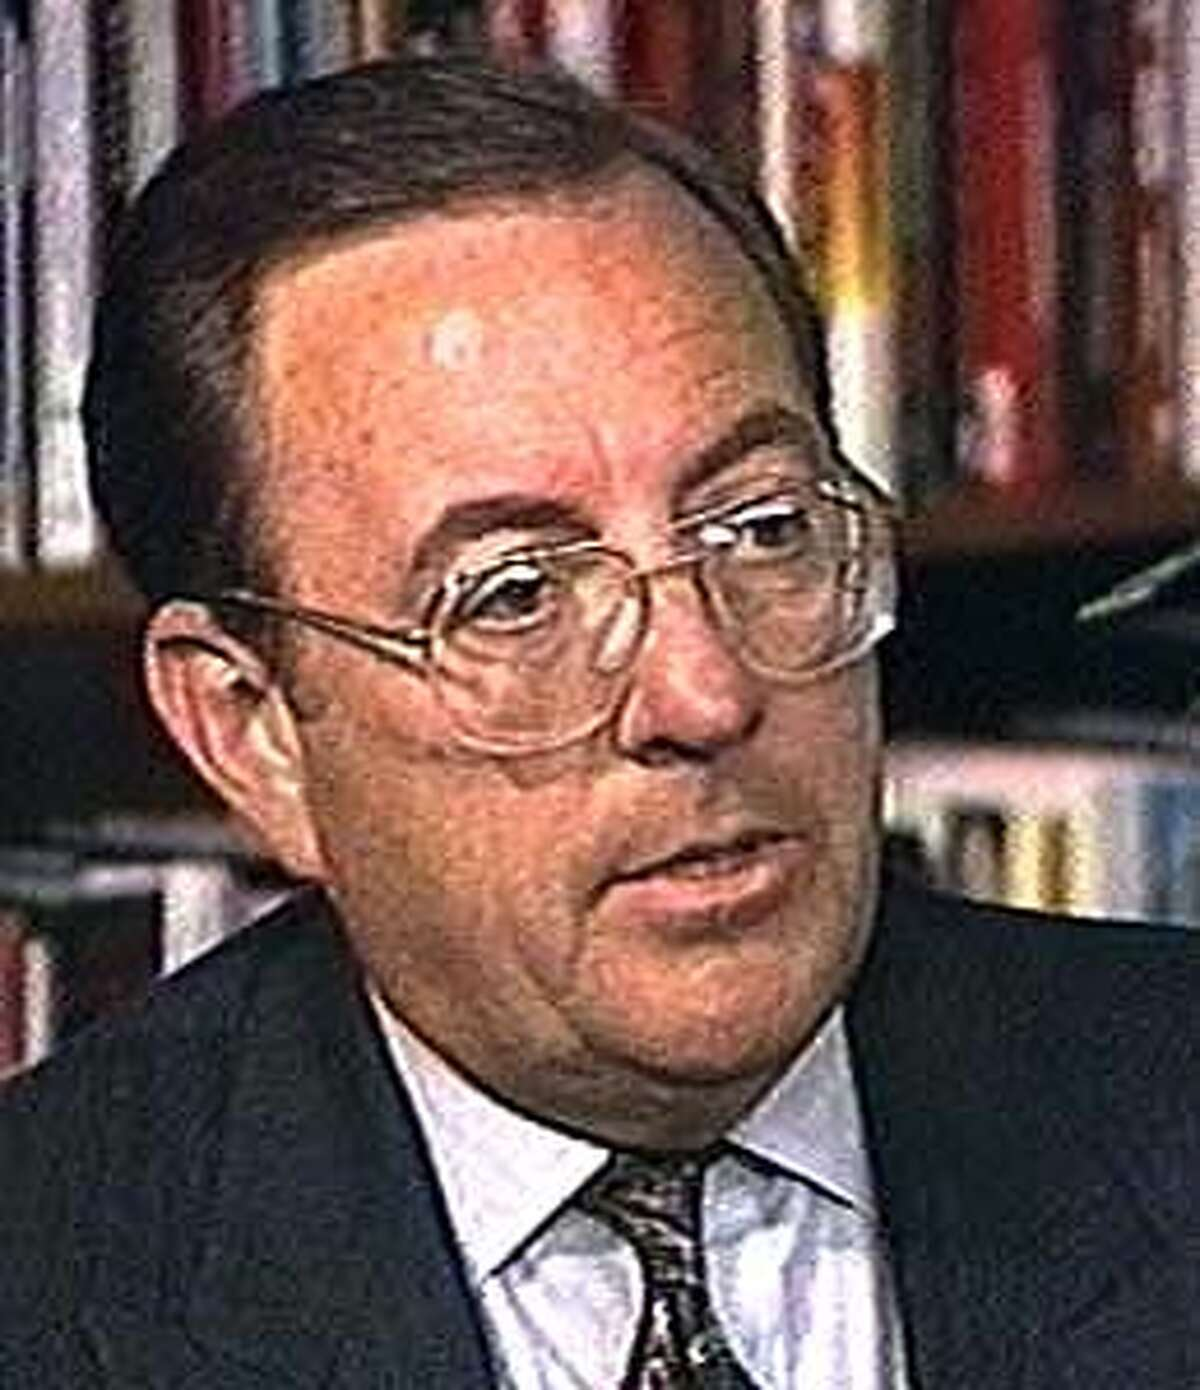 mug of joseph russoniello Ran on: 12-21-2007 Joseph Russoniello was first appointed U.S. attorney in 1982 by Ronald Reagan. Ran on: 12-21-2007 Ran on: 12-21-2007 Joseph Russoniello was first appointed U.S. attorney in 1982 by Ronald Reagan. Ran on: 12-21-2007